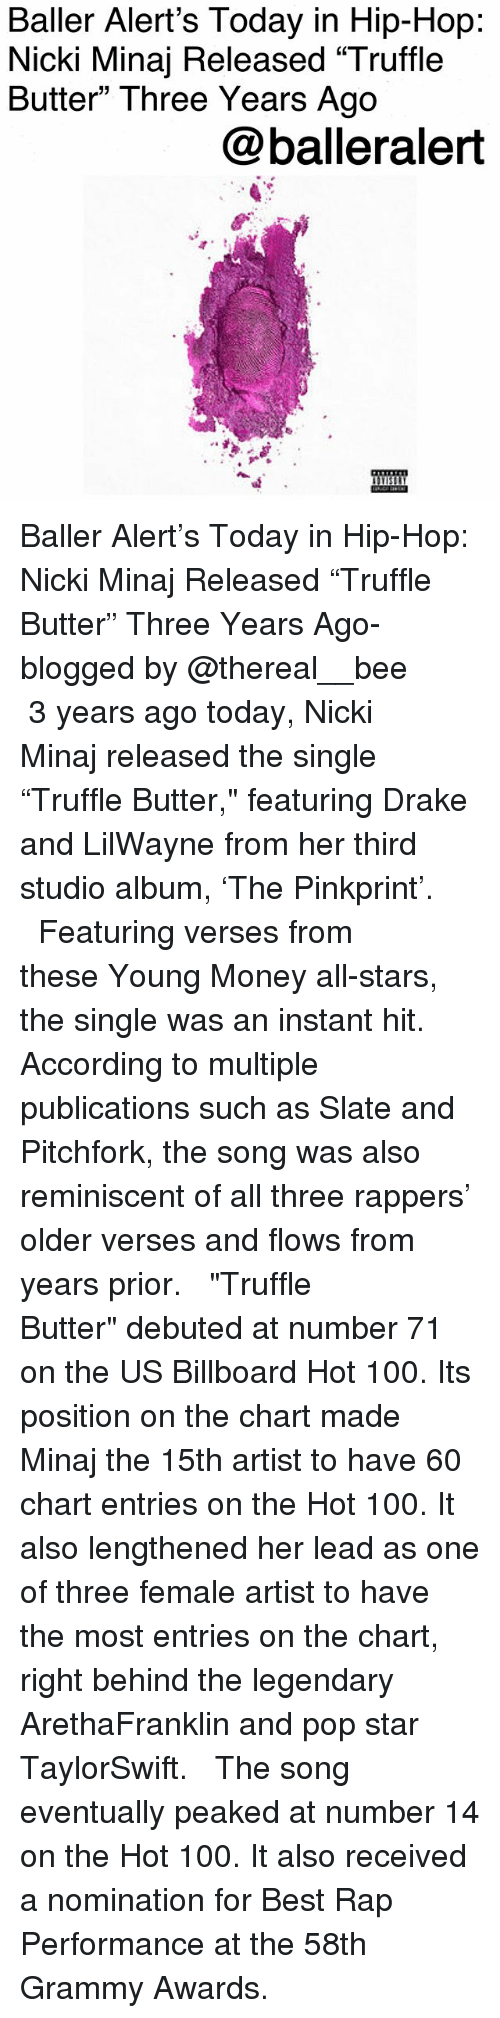 """billboard hot 100: Baller Alert's Today in Hip-Hop  Nicki Minaj Released """"Truffle  Butter"""" Three Years Ago  @balleralert Baller Alert's Today in Hip-Hop: Nicki Minaj Released """"Truffle Butter"""" Three Years Ago-blogged by @thereal__bee ⠀⠀⠀⠀⠀⠀⠀ ⠀⠀⠀⠀ 3 years ago today, Nicki Minaj released the single """"Truffle Butter,"""" featuring Drake and LilWayne from her third studio album, 'The Pinkprint'. ⠀⠀⠀⠀⠀⠀⠀ ⠀⠀⠀⠀ Featuring verses from these Young Money all-stars, the single was an instant hit. According to multiple publications such as Slate and Pitchfork, the song was also reminiscent of all three rappers' older verses and flows from years prior. ⠀⠀⠀⠀⠀⠀⠀ ⠀⠀⠀⠀ """"Truffle Butter"""" debuted at number 71 on the US Billboard Hot 100. Its position on the chart made Minaj the 15th artist to have 60 chart entries on the Hot 100. It also lengthened her lead as one of three female artist to have the most entries on the chart, right behind the legendary ArethaFranklin and pop star TaylorSwift. ⠀⠀⠀⠀⠀⠀⠀ ⠀⠀⠀⠀ The song eventually peaked at number 14 on the Hot 100. It also received a nomination for Best Rap Performance at the 58th Grammy Awards."""